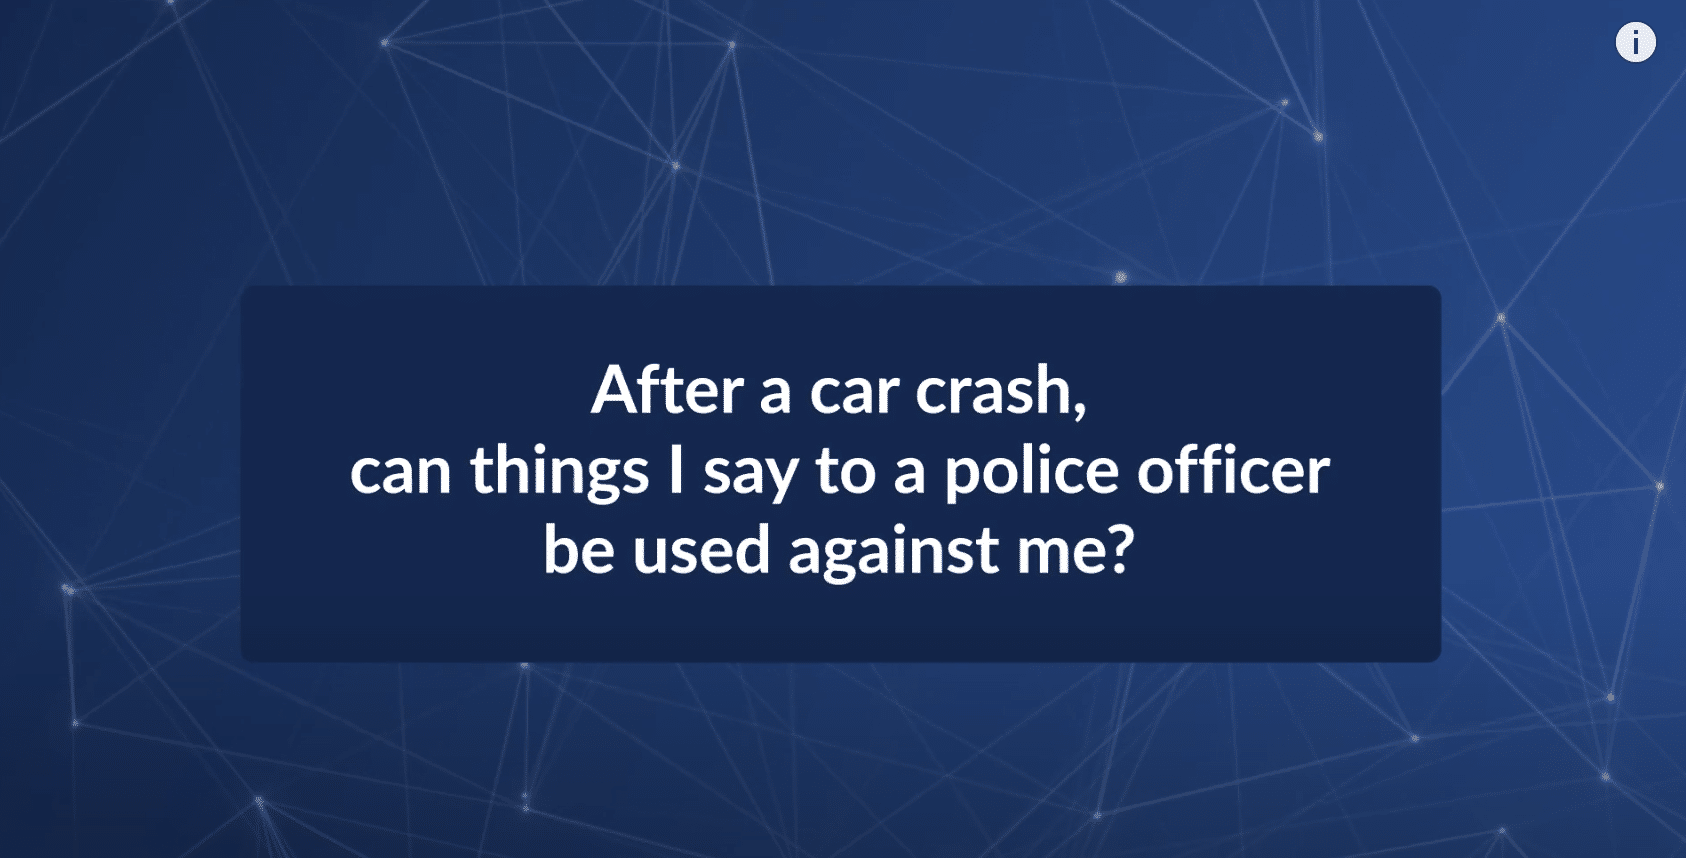 Can Things I Say After a Car Crash Be Used Against Me?